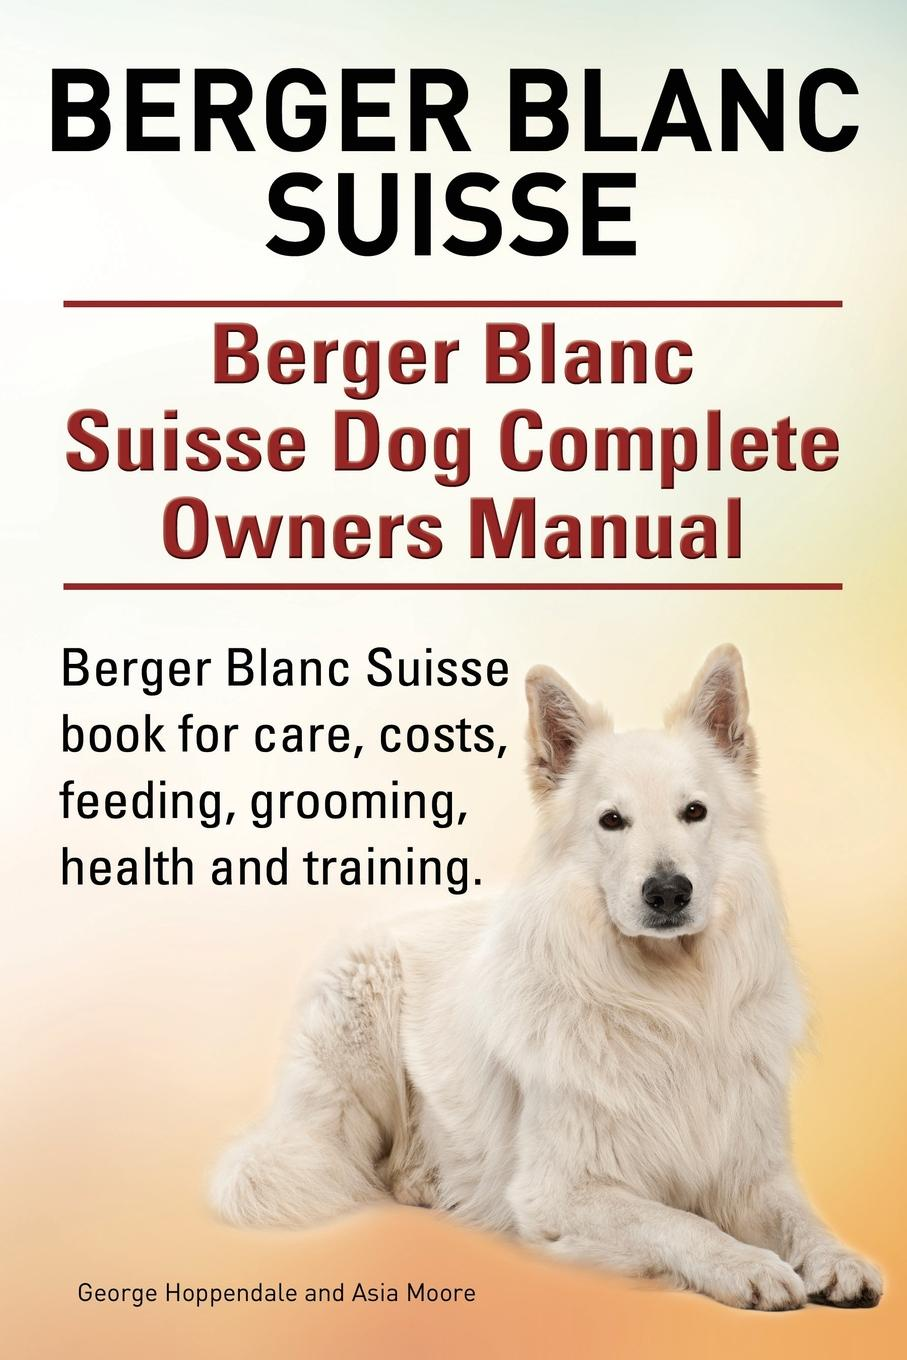 George Hoppendale, Asia Moore Berger Blanc Suisse. Berger Blanc Suisse Dog Complete Owners Manual. Berger Blanc Suisse book for care, costs, feeding, grooming, health and training. marti l berger the father wears son glasses the rhyme and reason for everything